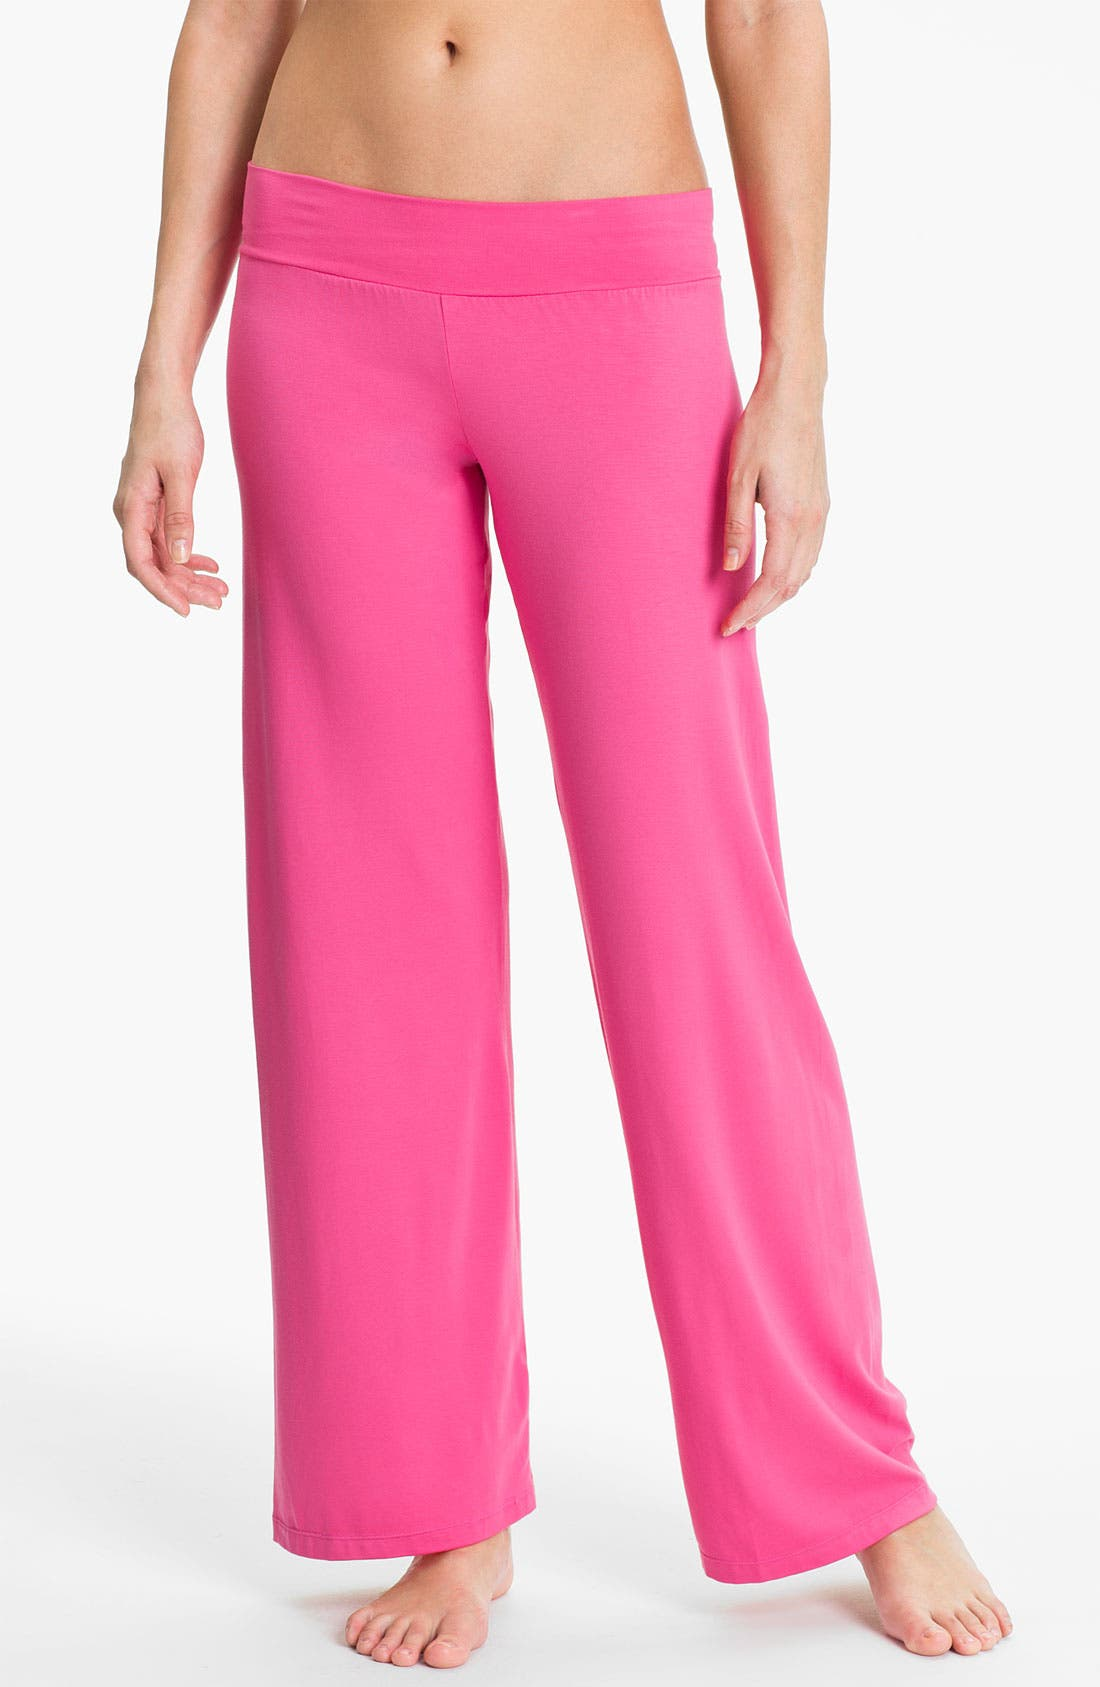 Alternate Image 1 Selected - Cosabella 'Talco' Lounge Pants